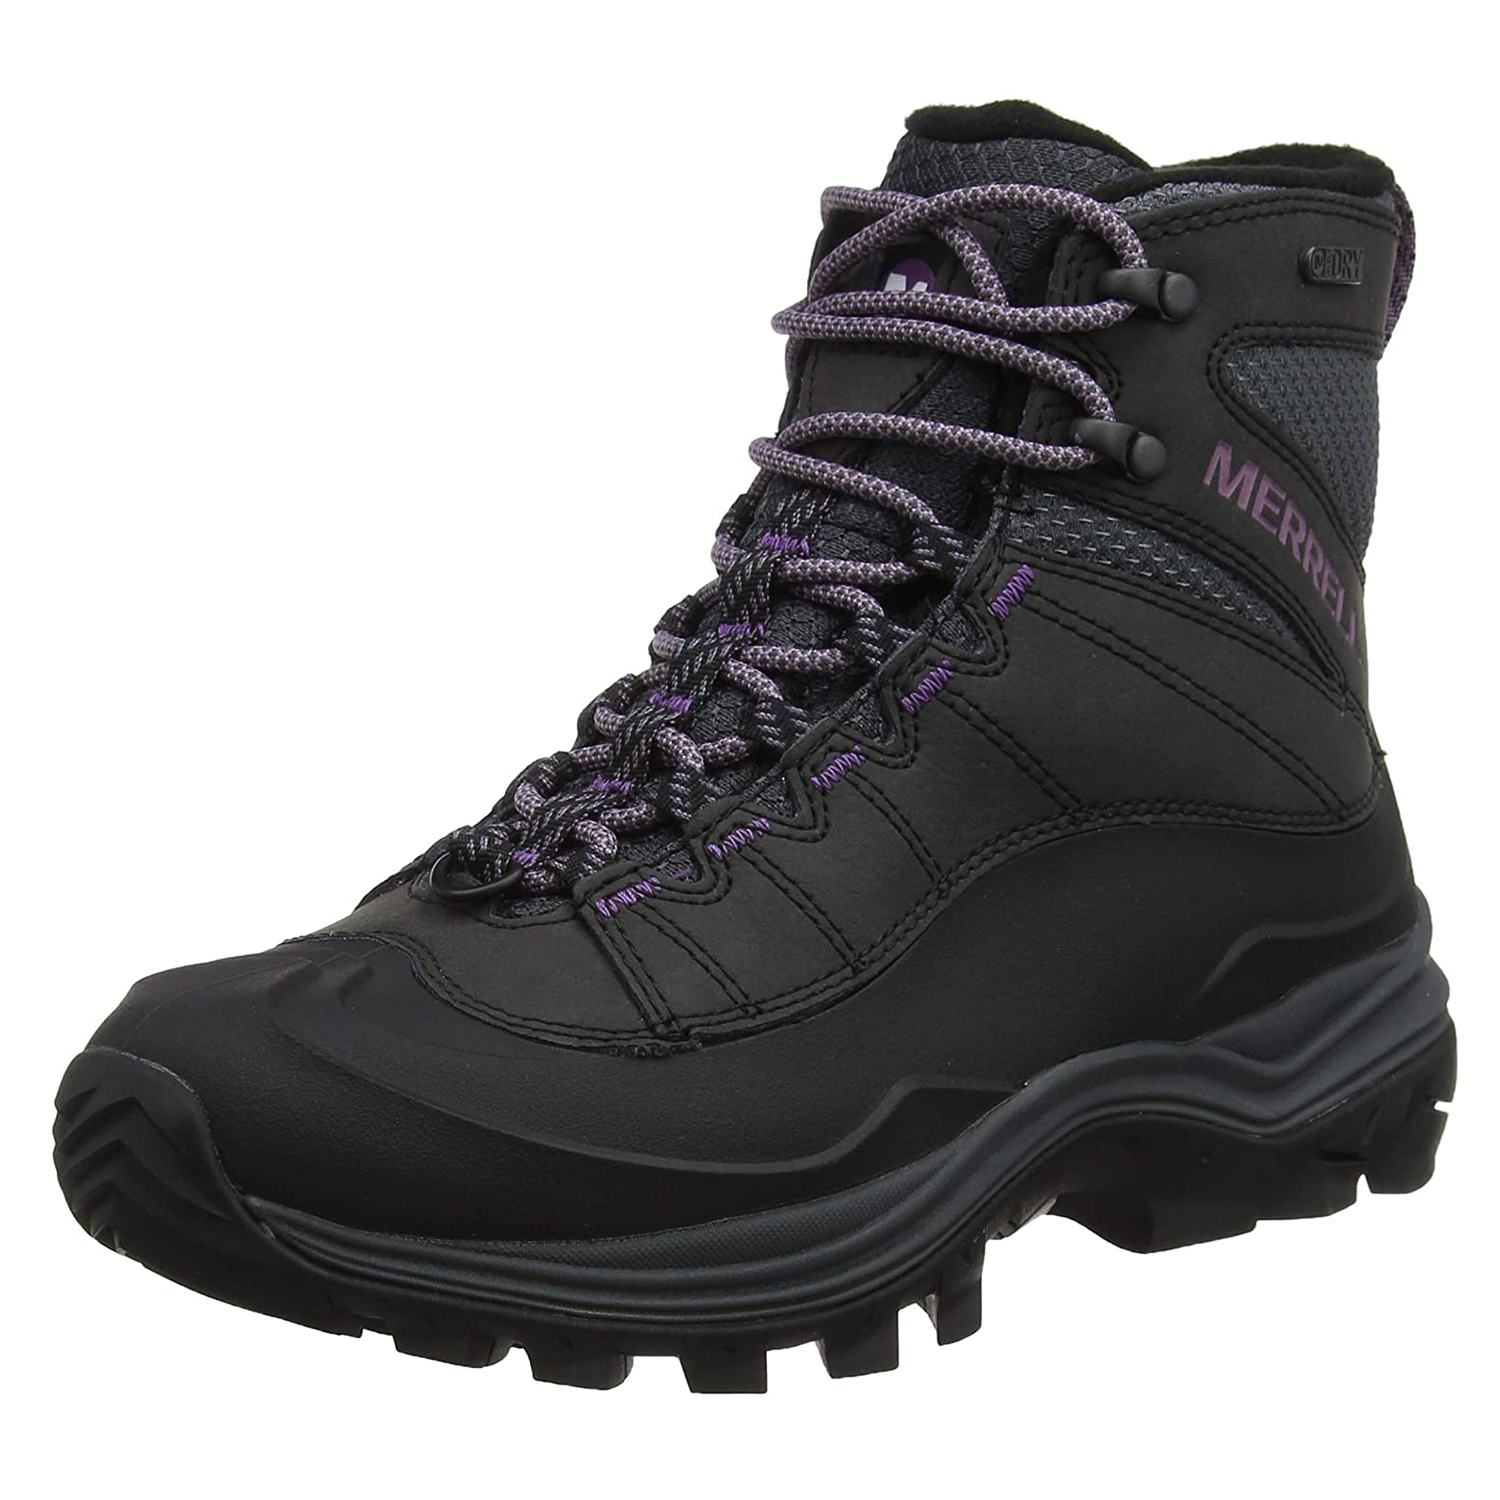 Best for Hiking: Merrell Women's Thermo Chill Six-Inch Waterproof Boot